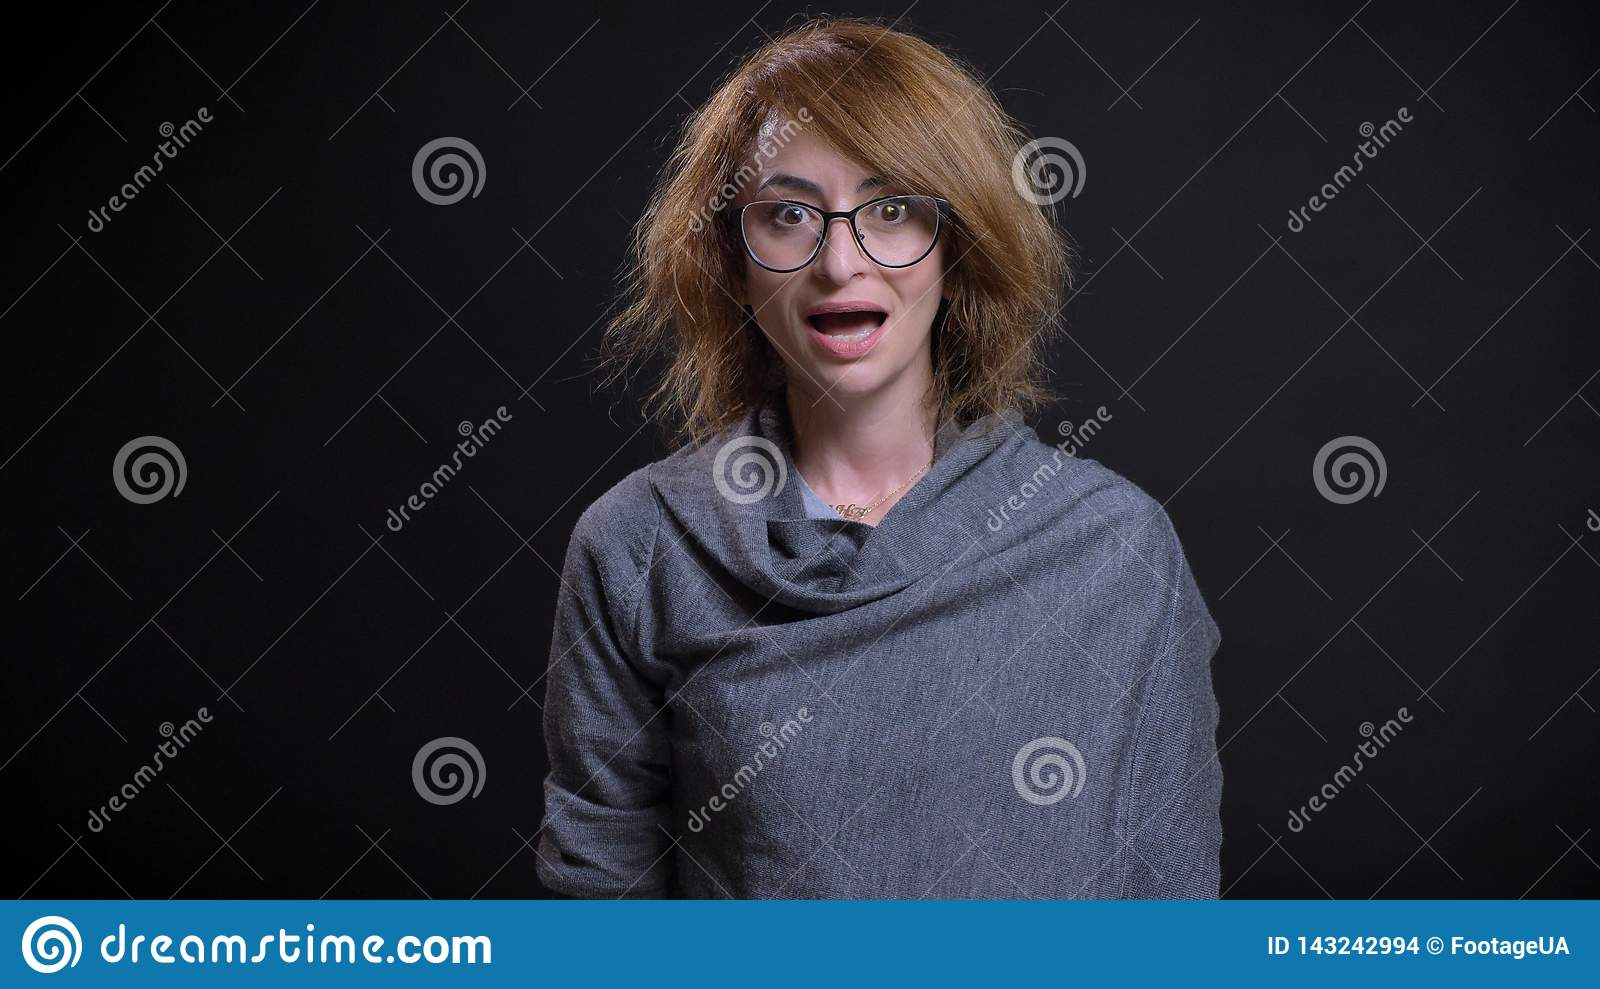 Closeup portrait of middle-aged extravagant redhead female in glasses getting surprised and excited while looking